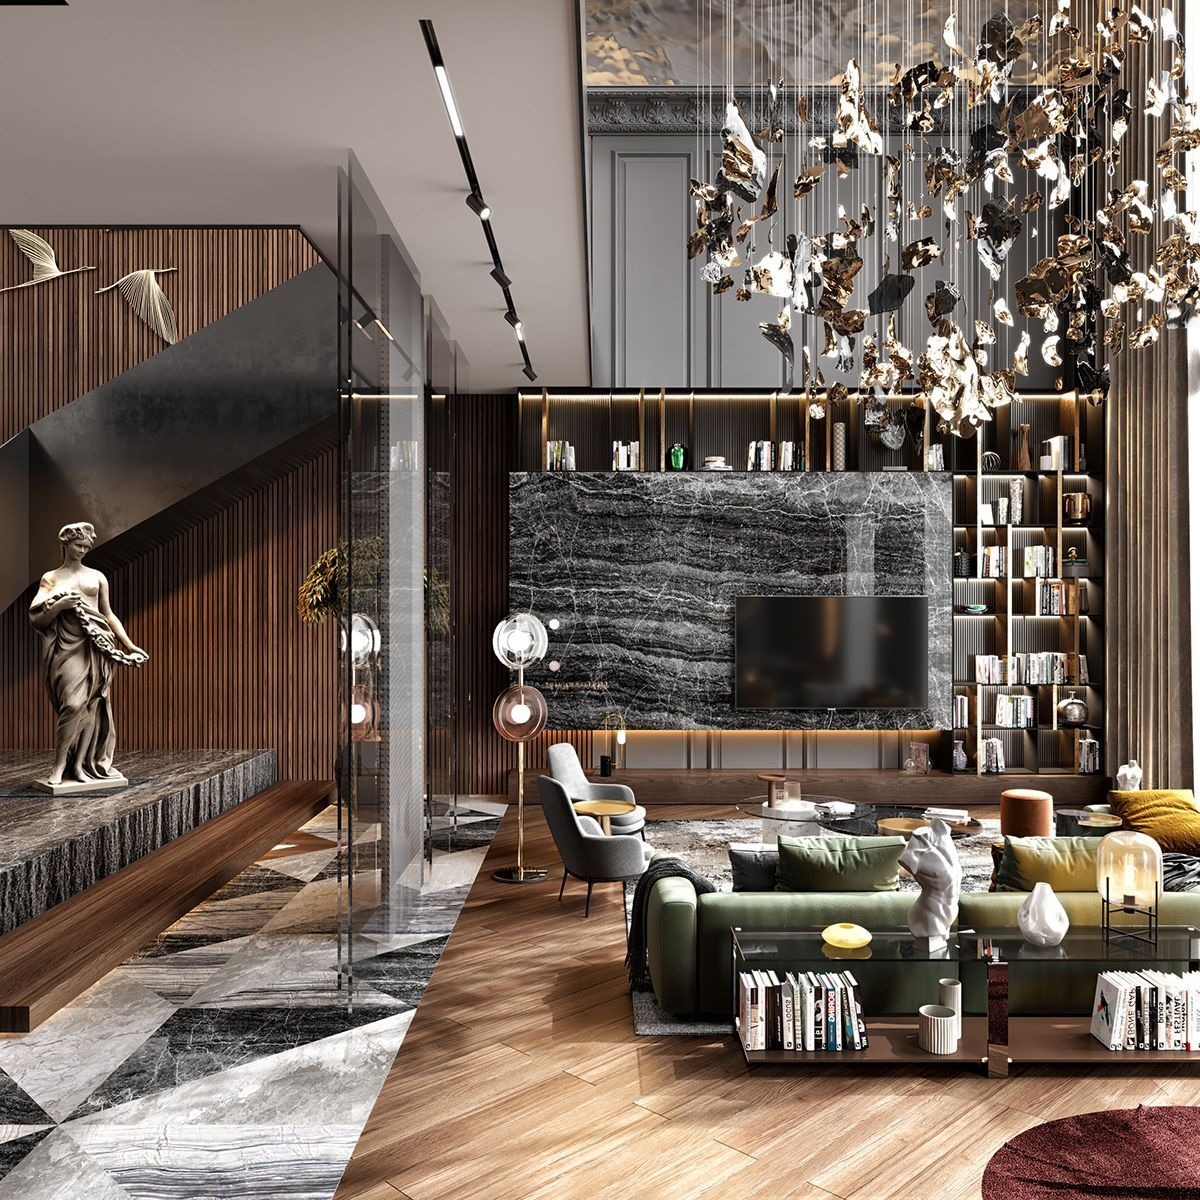 Home Decor 2012 Luxury Homes Interior Decoration Living: Enhance Your Senses With Luxury Home Decor In 2020 (With